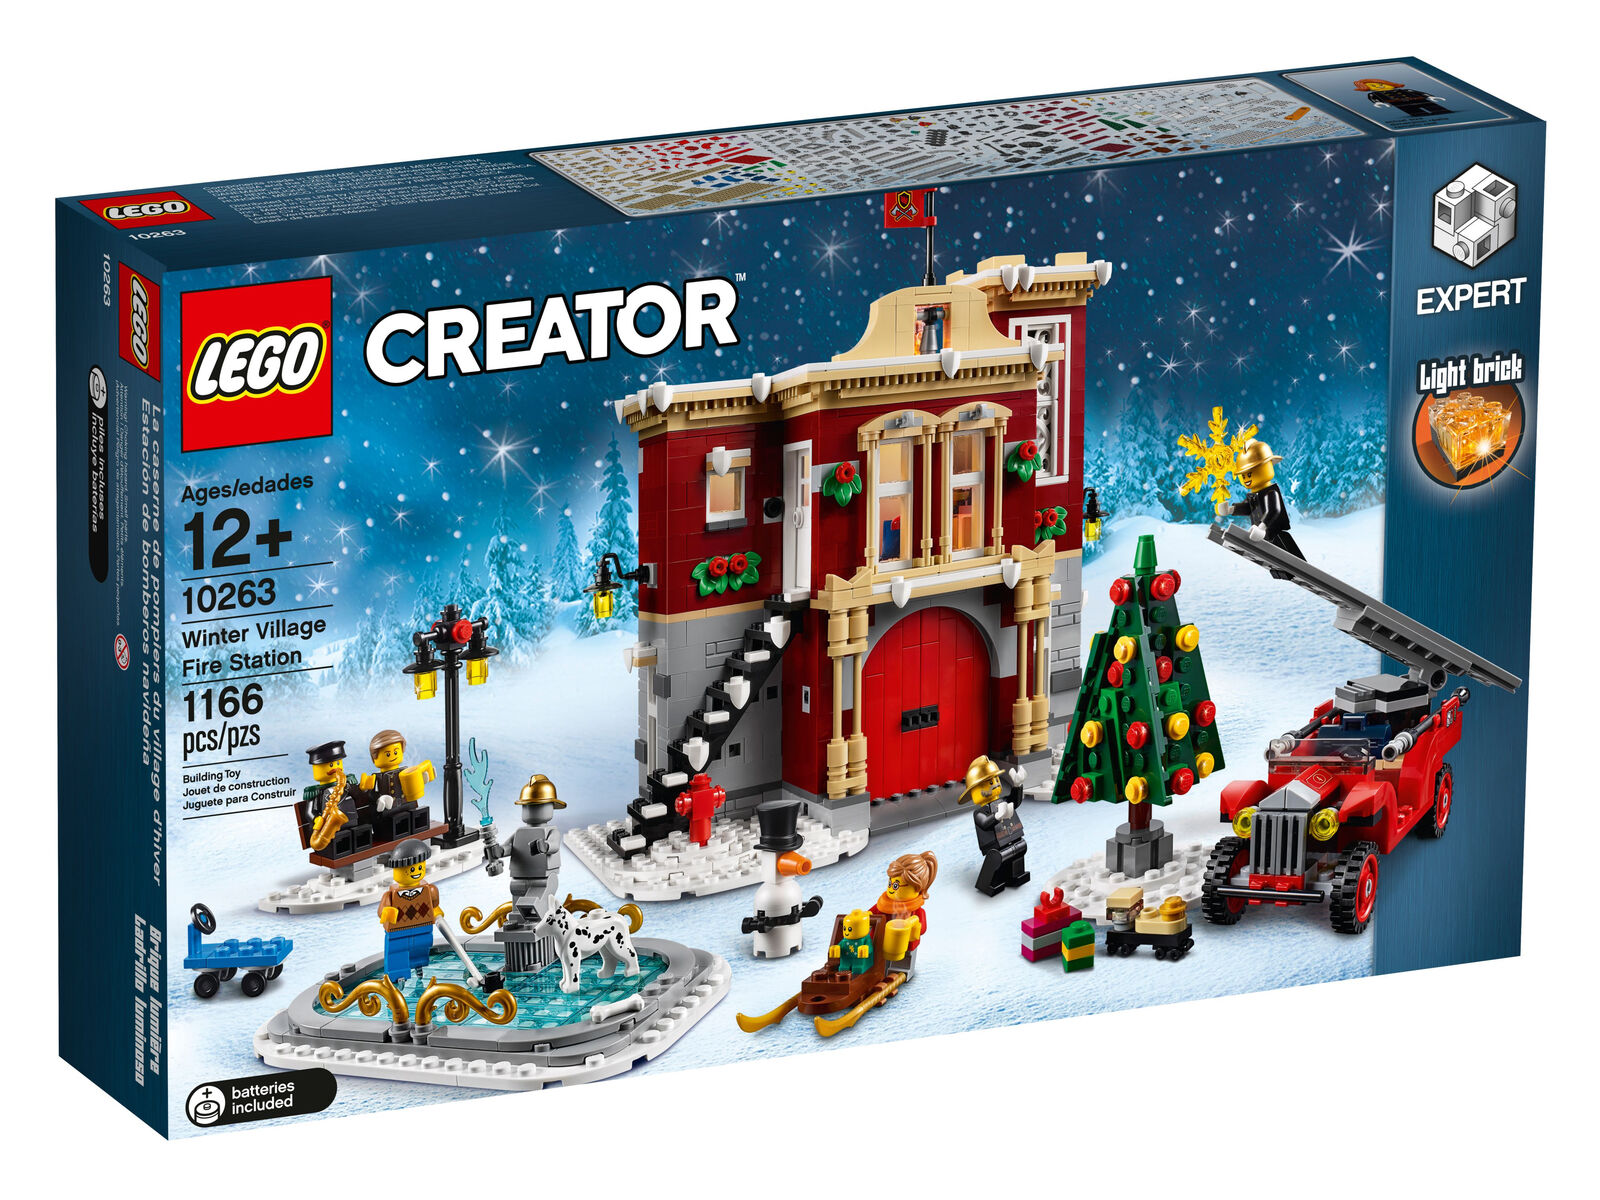 Lego CREATOR WINTER VILLAGE Estación De Fuego (10263)